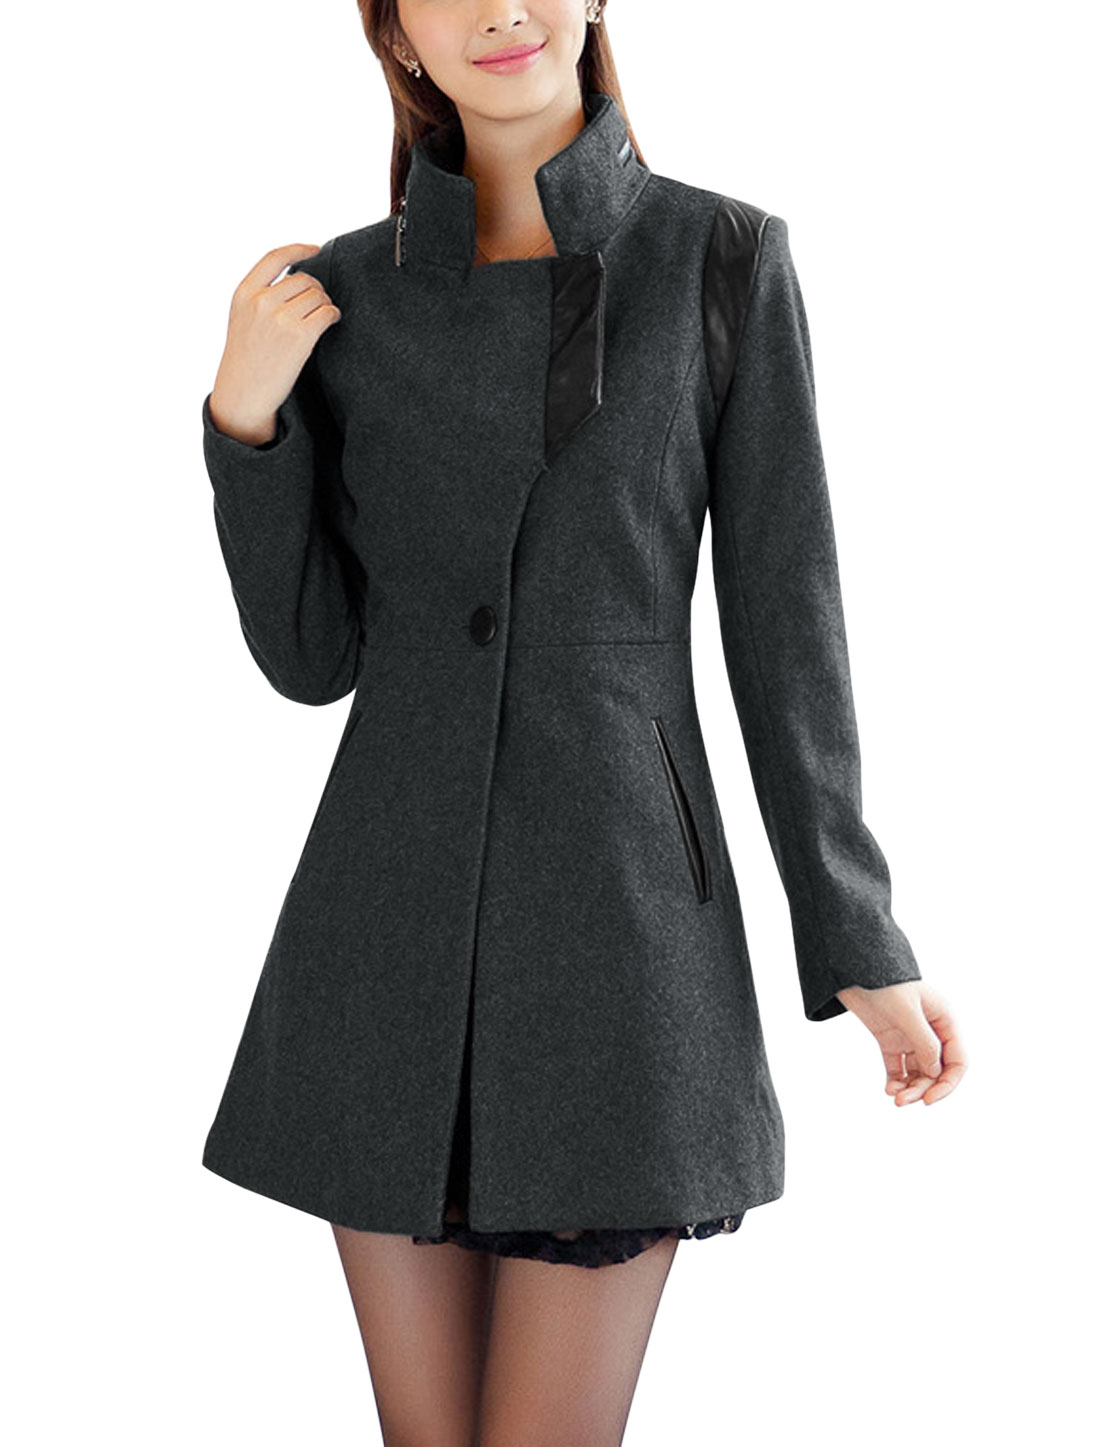 Women Convertible Collar Button Closed NEW Trench Worsted Coat Dark Gray XL